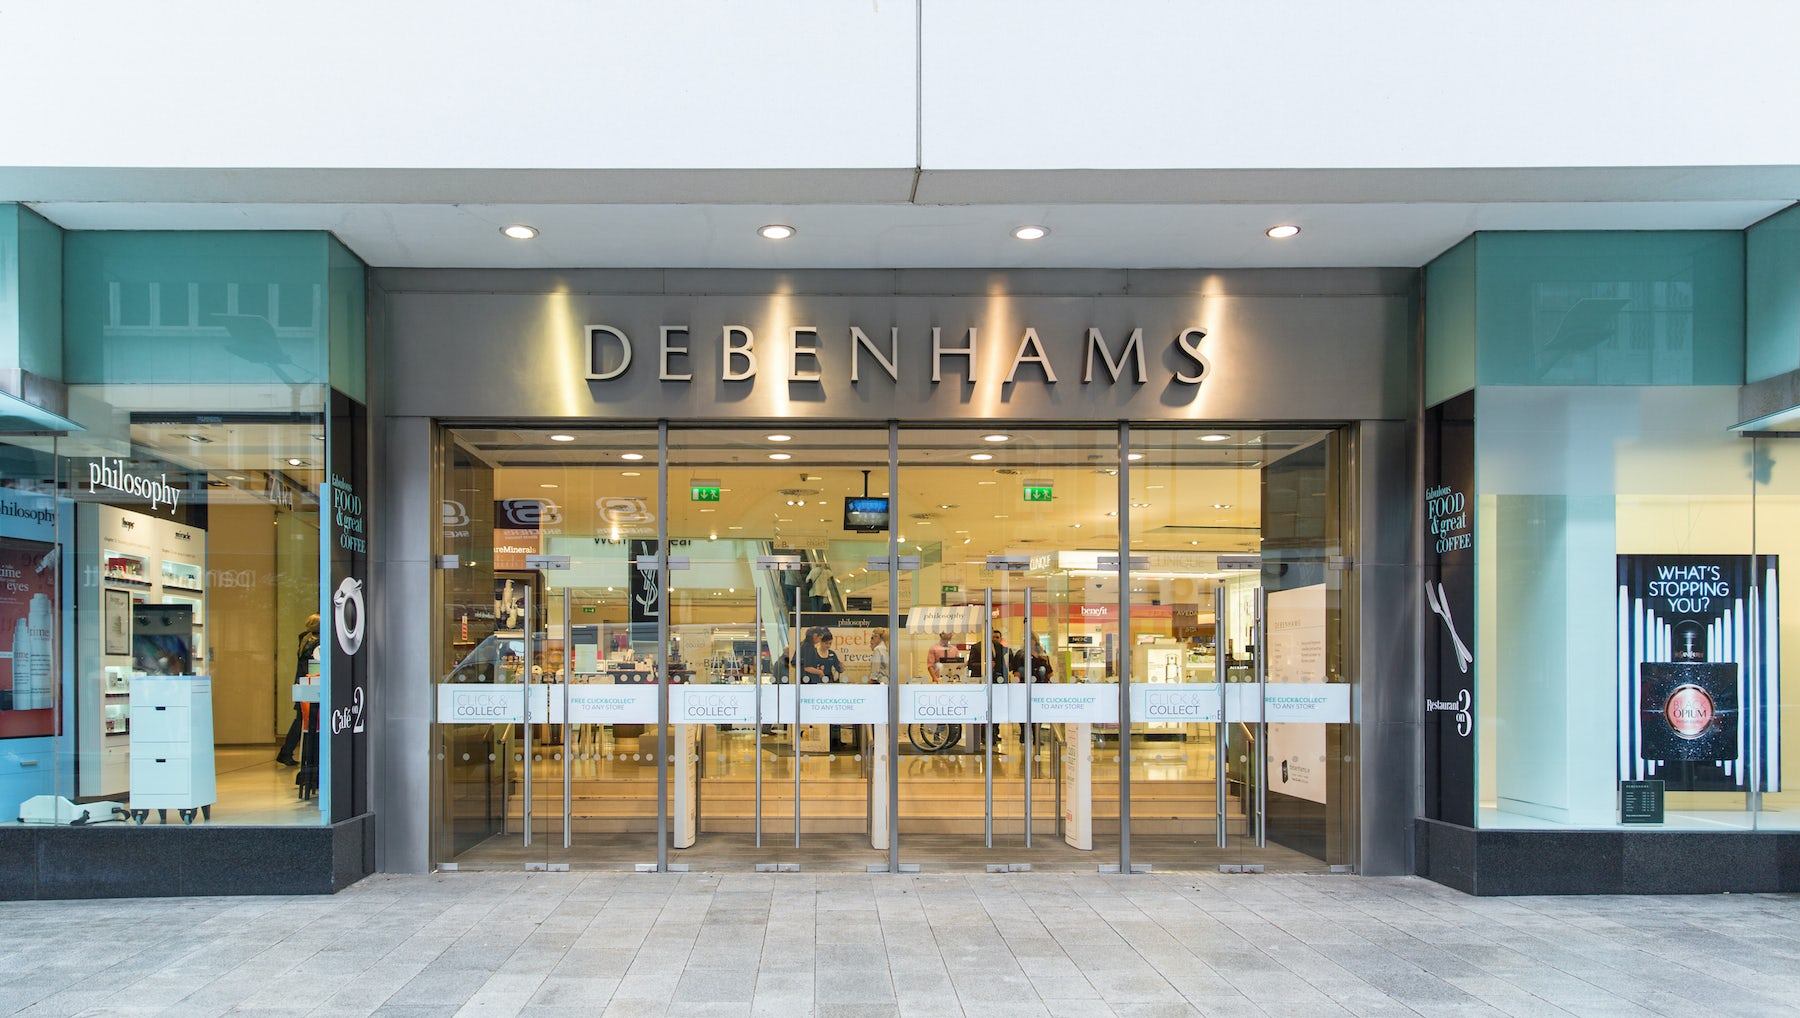 Debenhams | Source: Shutterstock